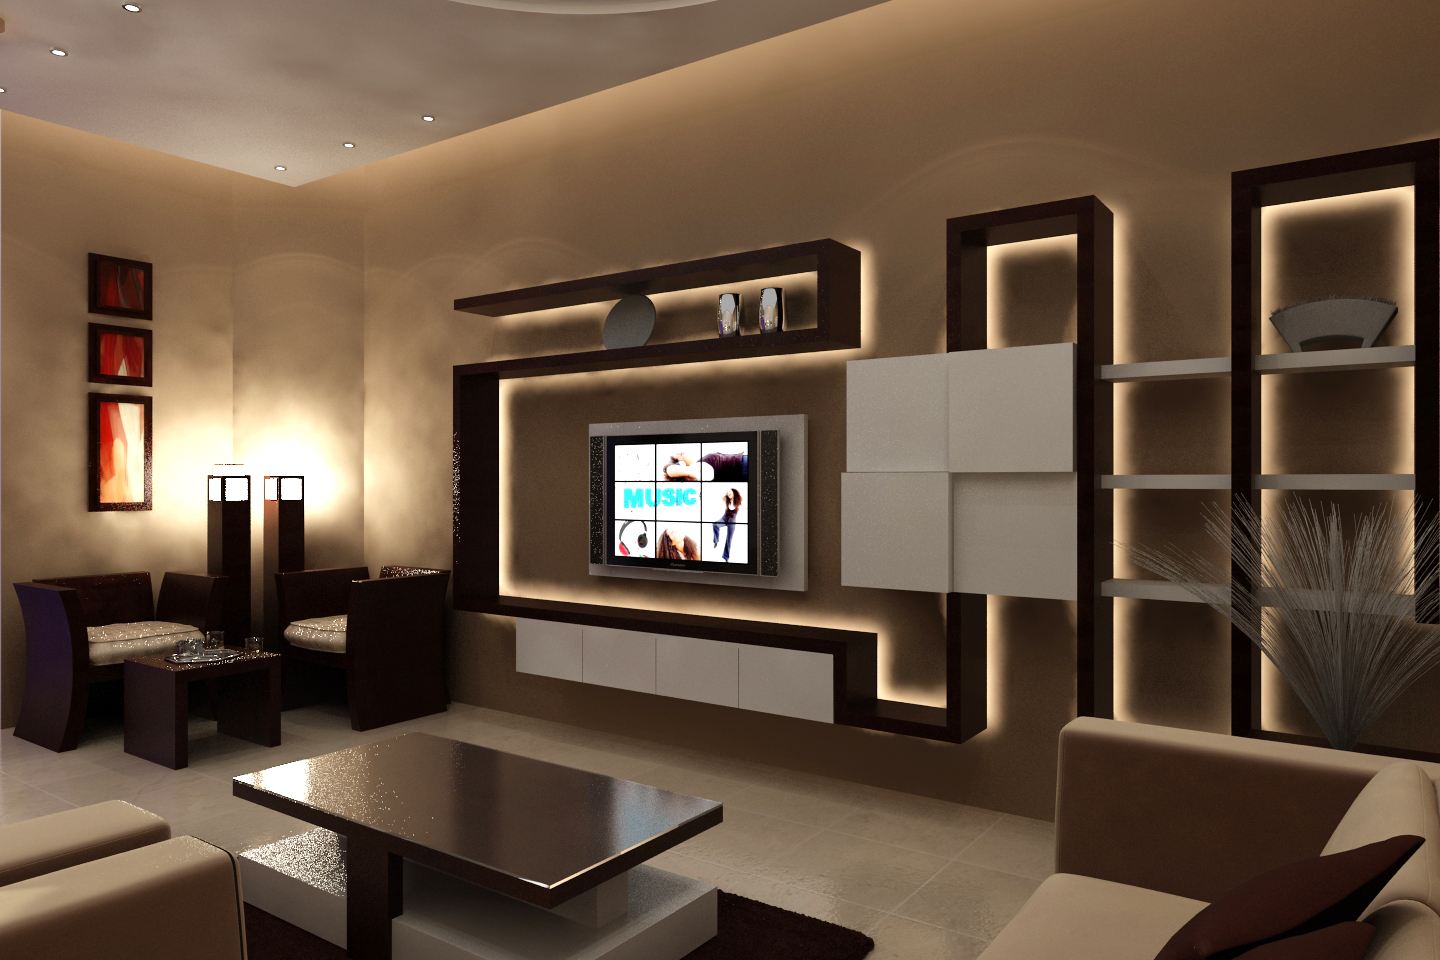 themes for living rooms light paint colors room modern with floating tv wall shelf and stylish coffee table on dark rug